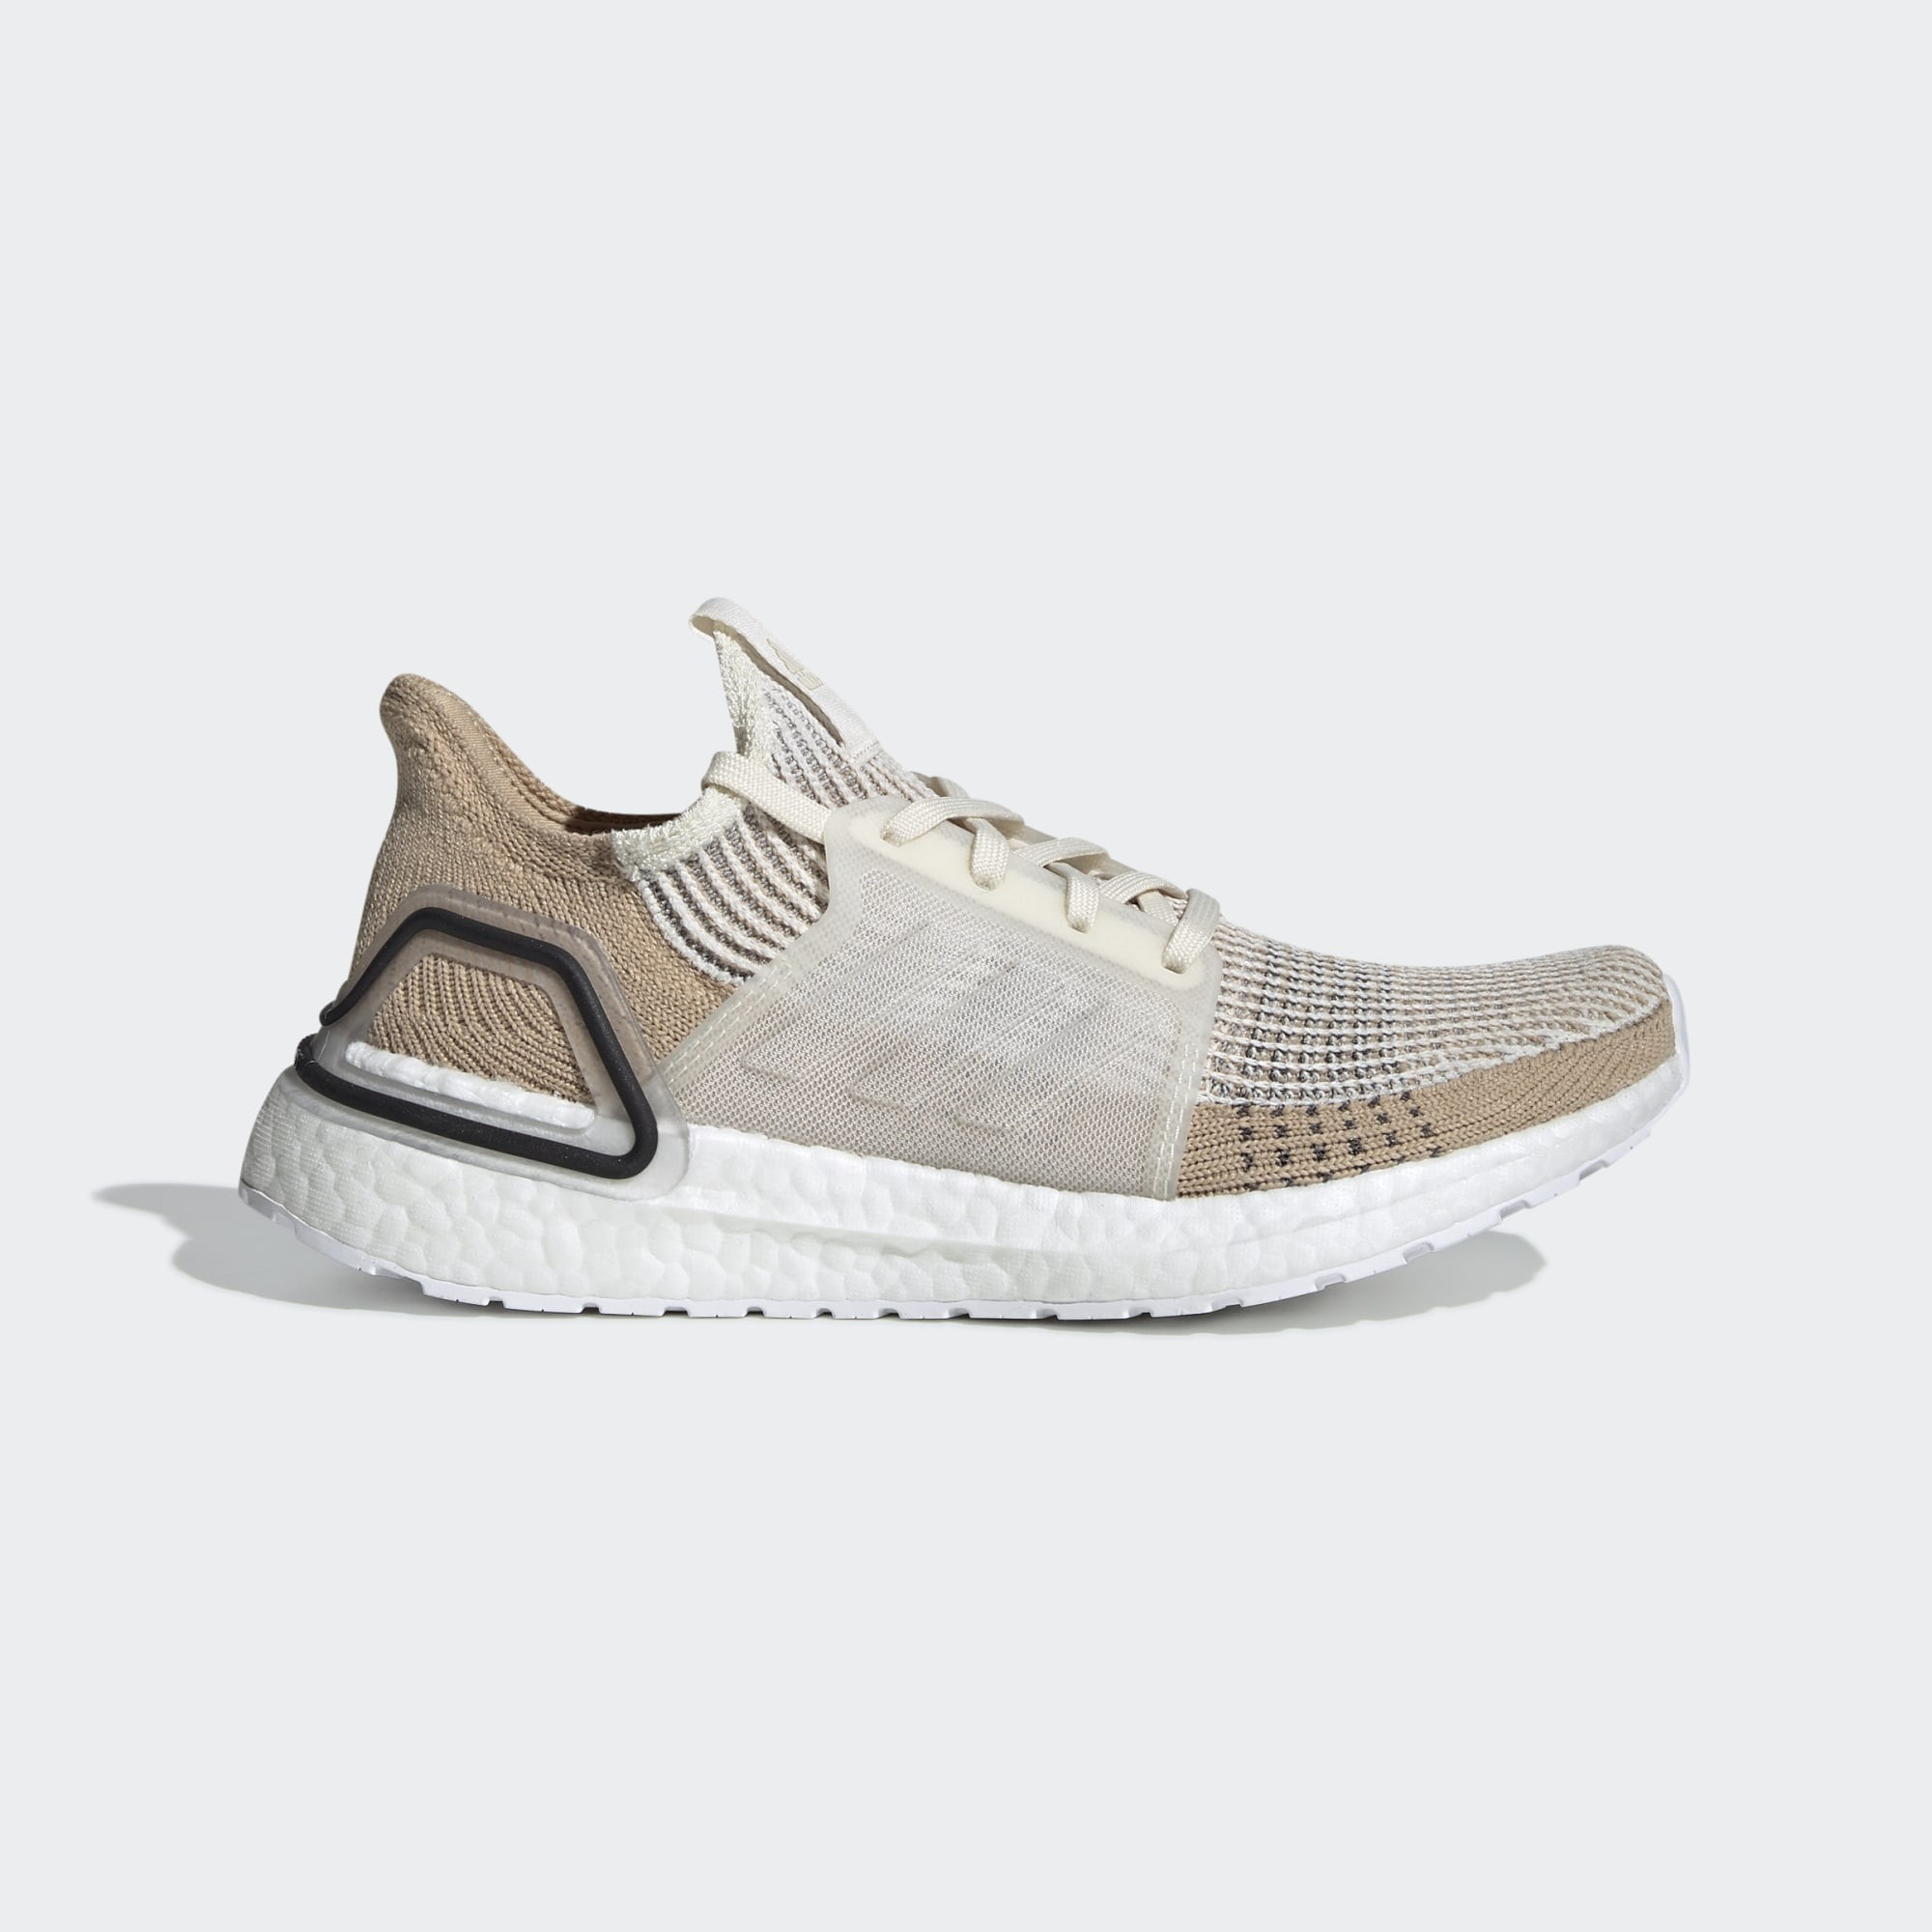 adidas Ultra Boost 2019 Chalk Blanche Pale Nude Femme B75878